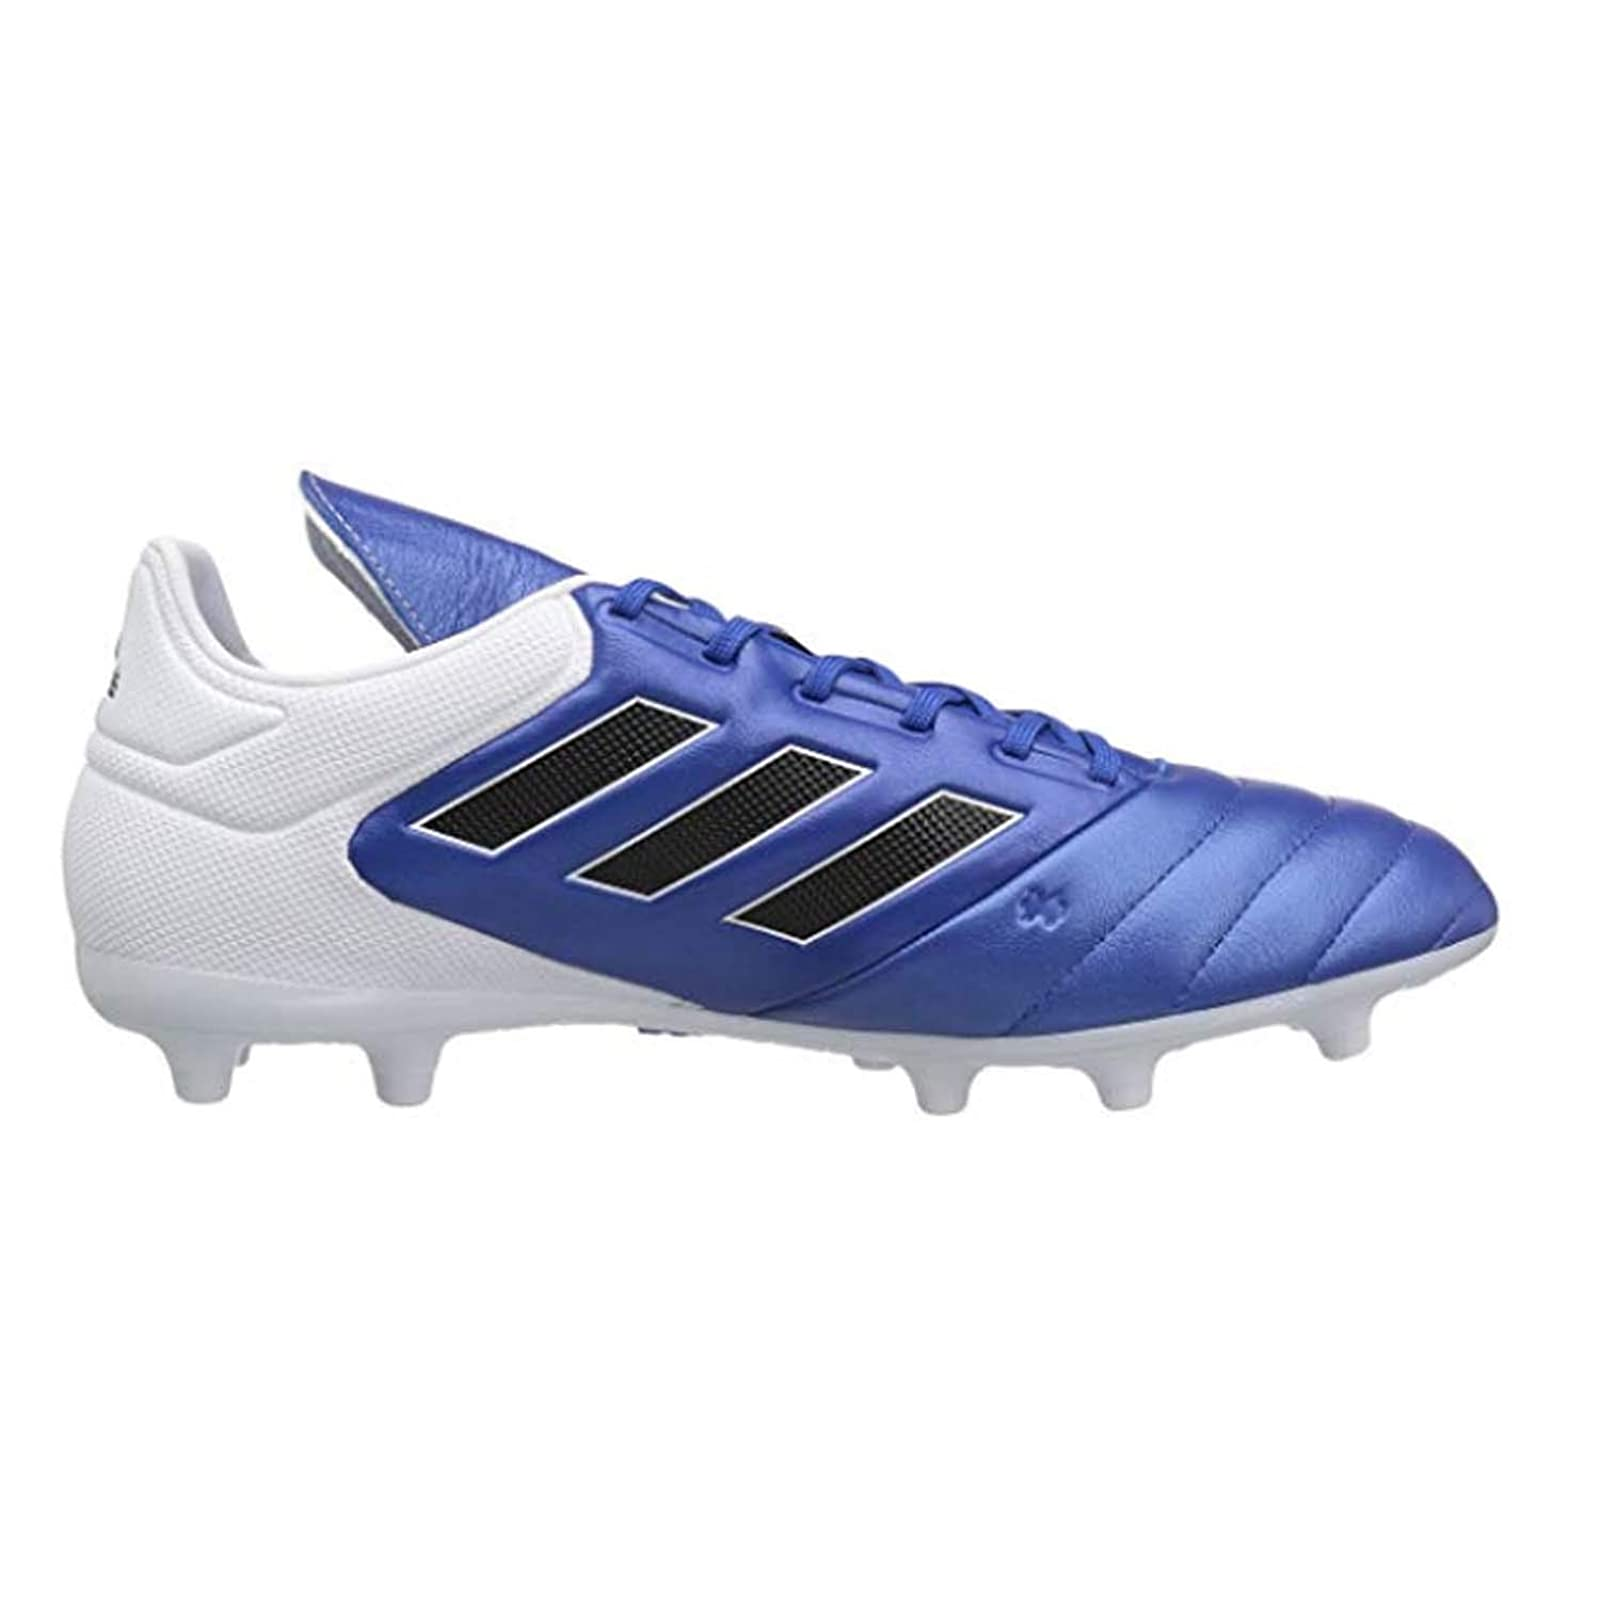 adidas Men's copa 17.3 fg BA9717 Blue/Black/White - 1